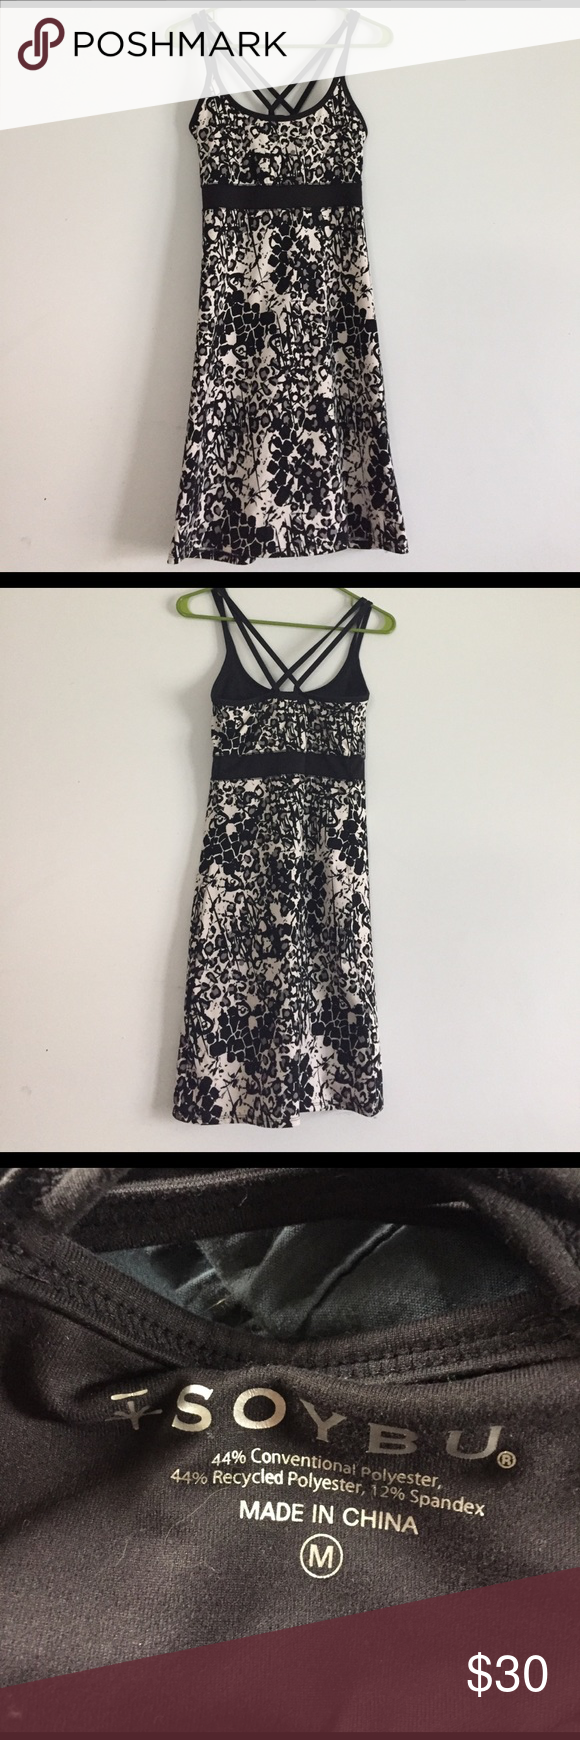 Soybu dress Worn once and in good condition. Has a built in bra for comfort. Cute criss cross detailing on the straps! I am 5'6 and the dress goes down to my knees! Soybu Dresses Midi